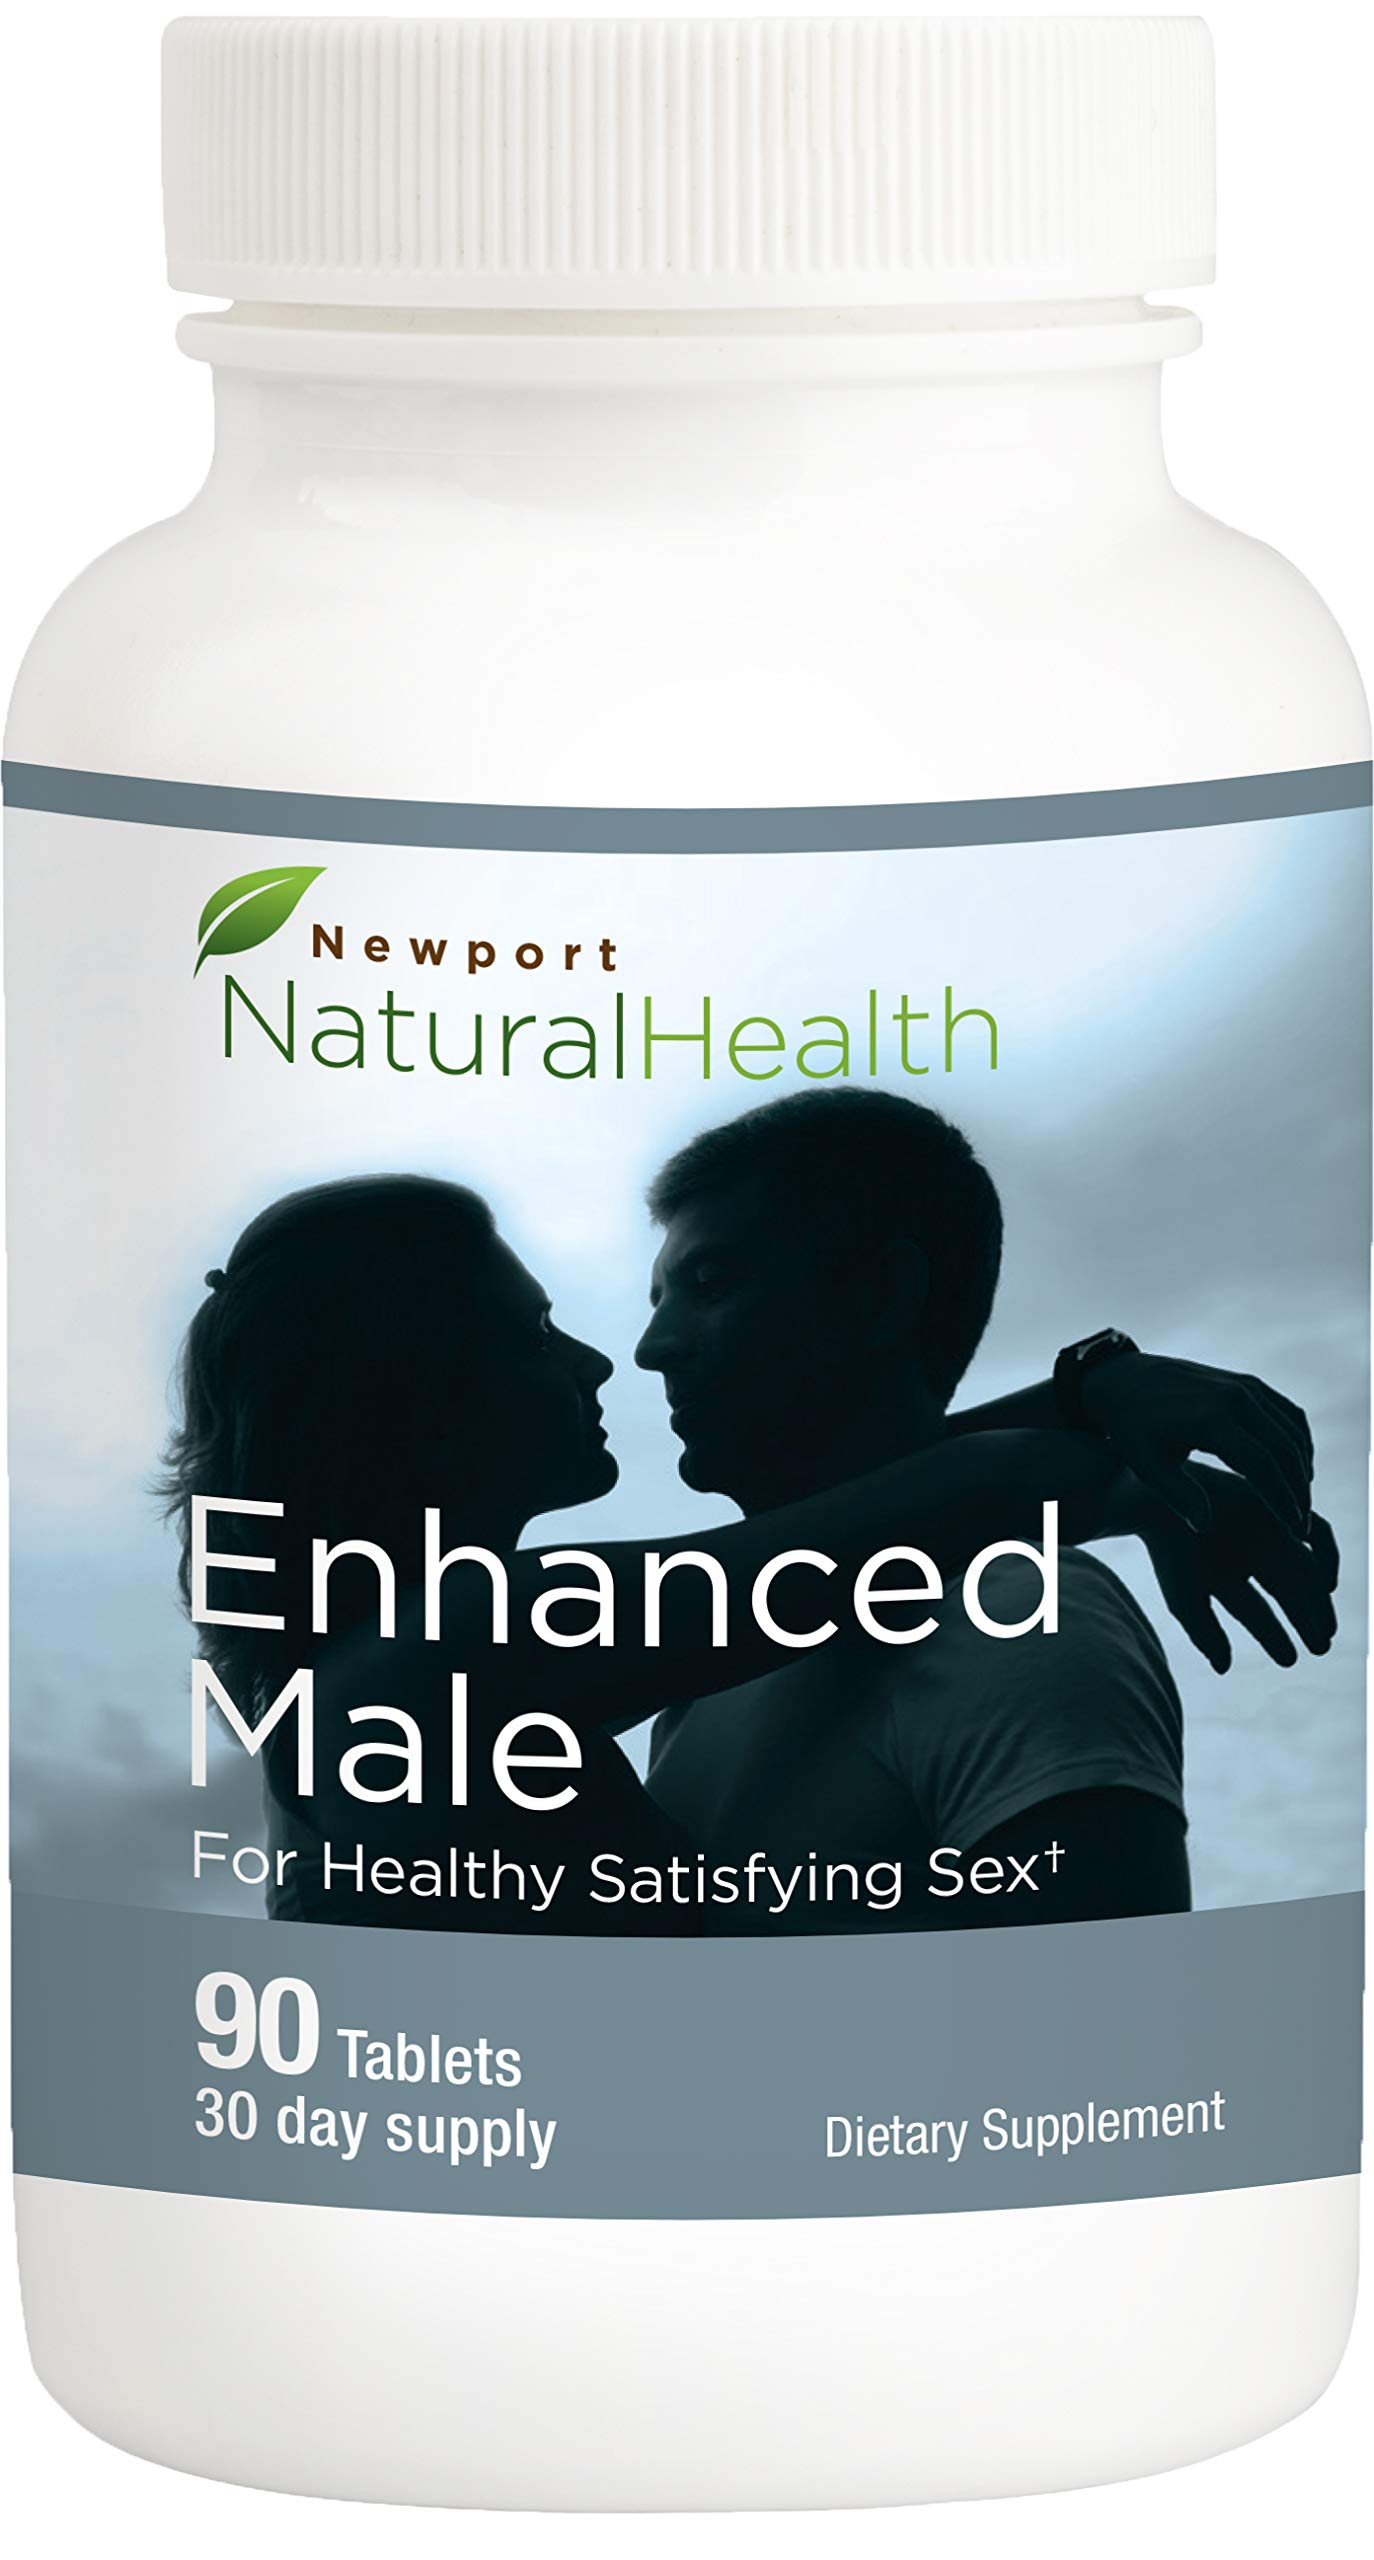 For boosters males libido natural 9 natural